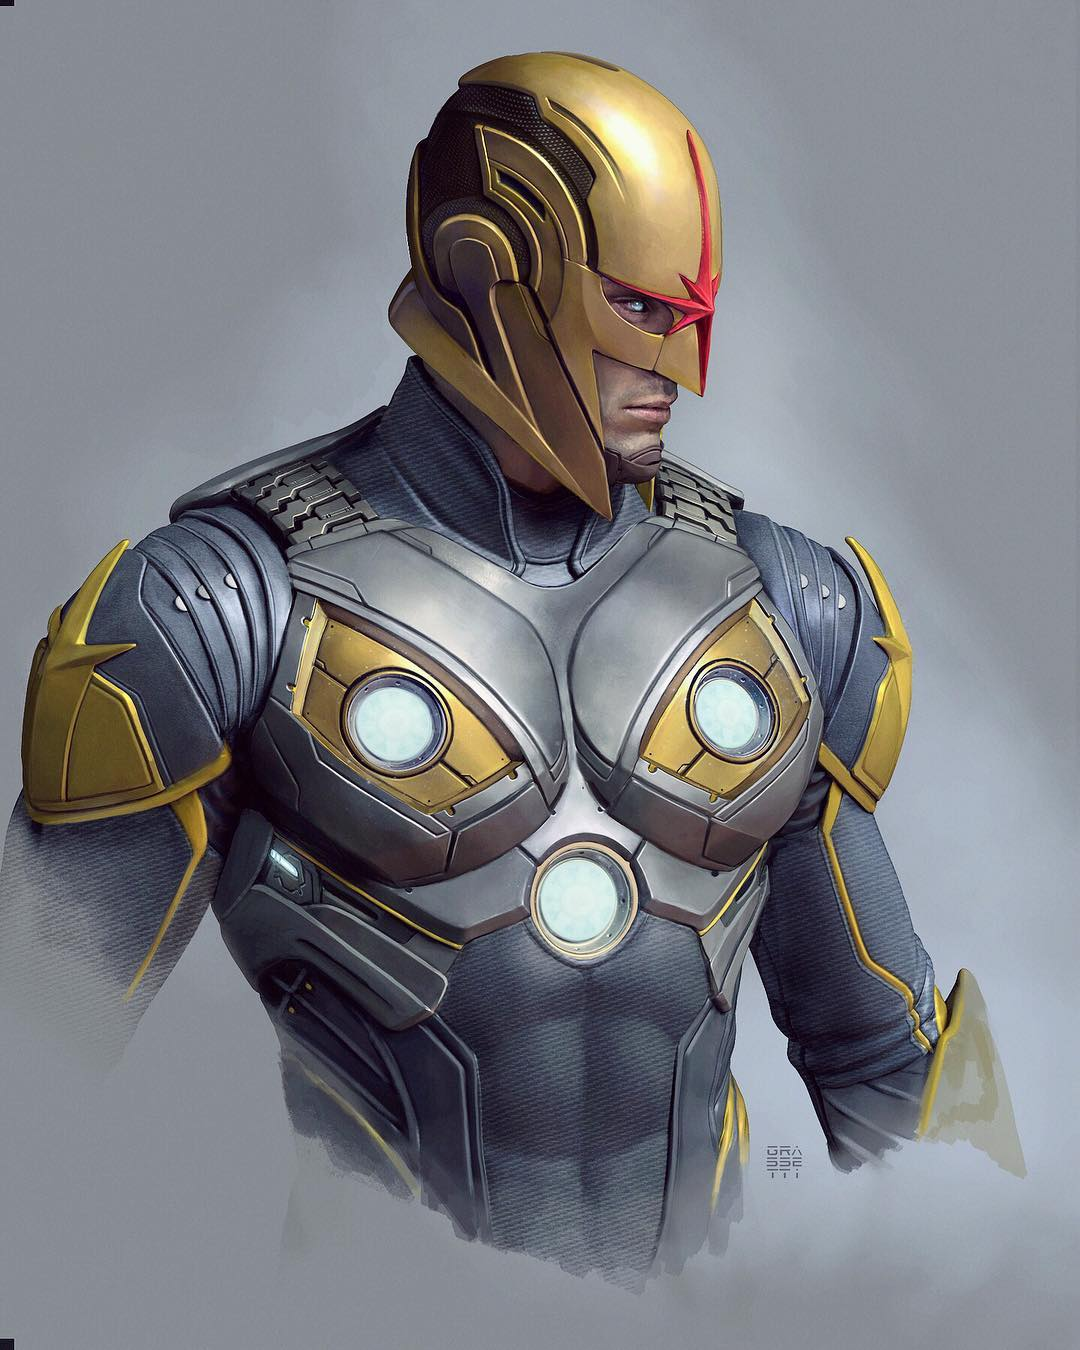 Awesome Nova MCU Concept Art